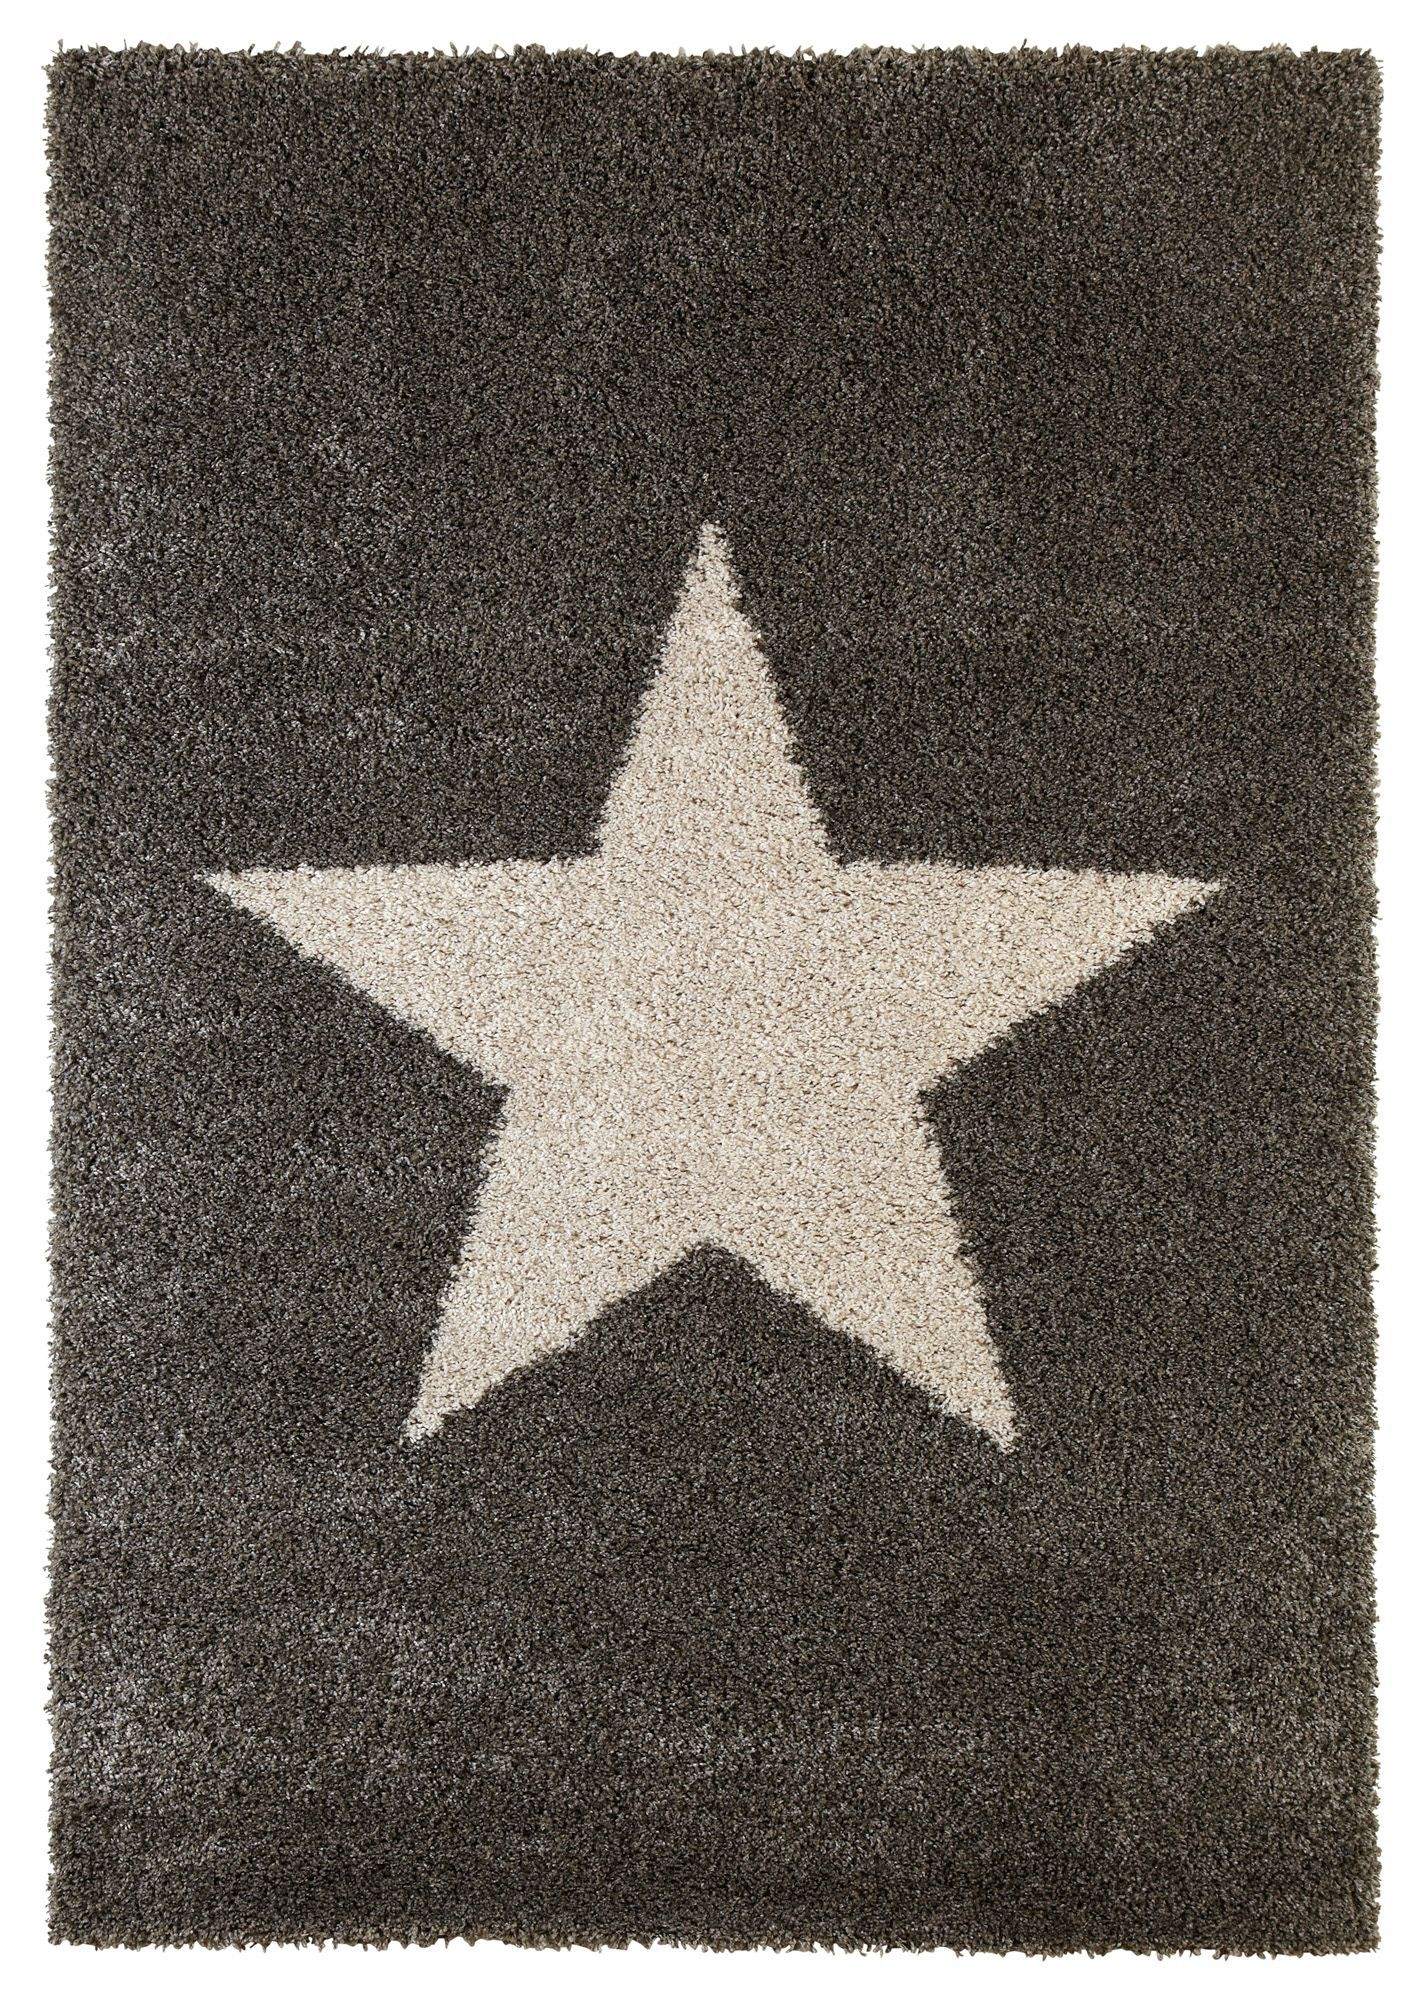 Colours Felicity Cream Grey Star Rug L 1 7m W 2m Departments Diy At B Q